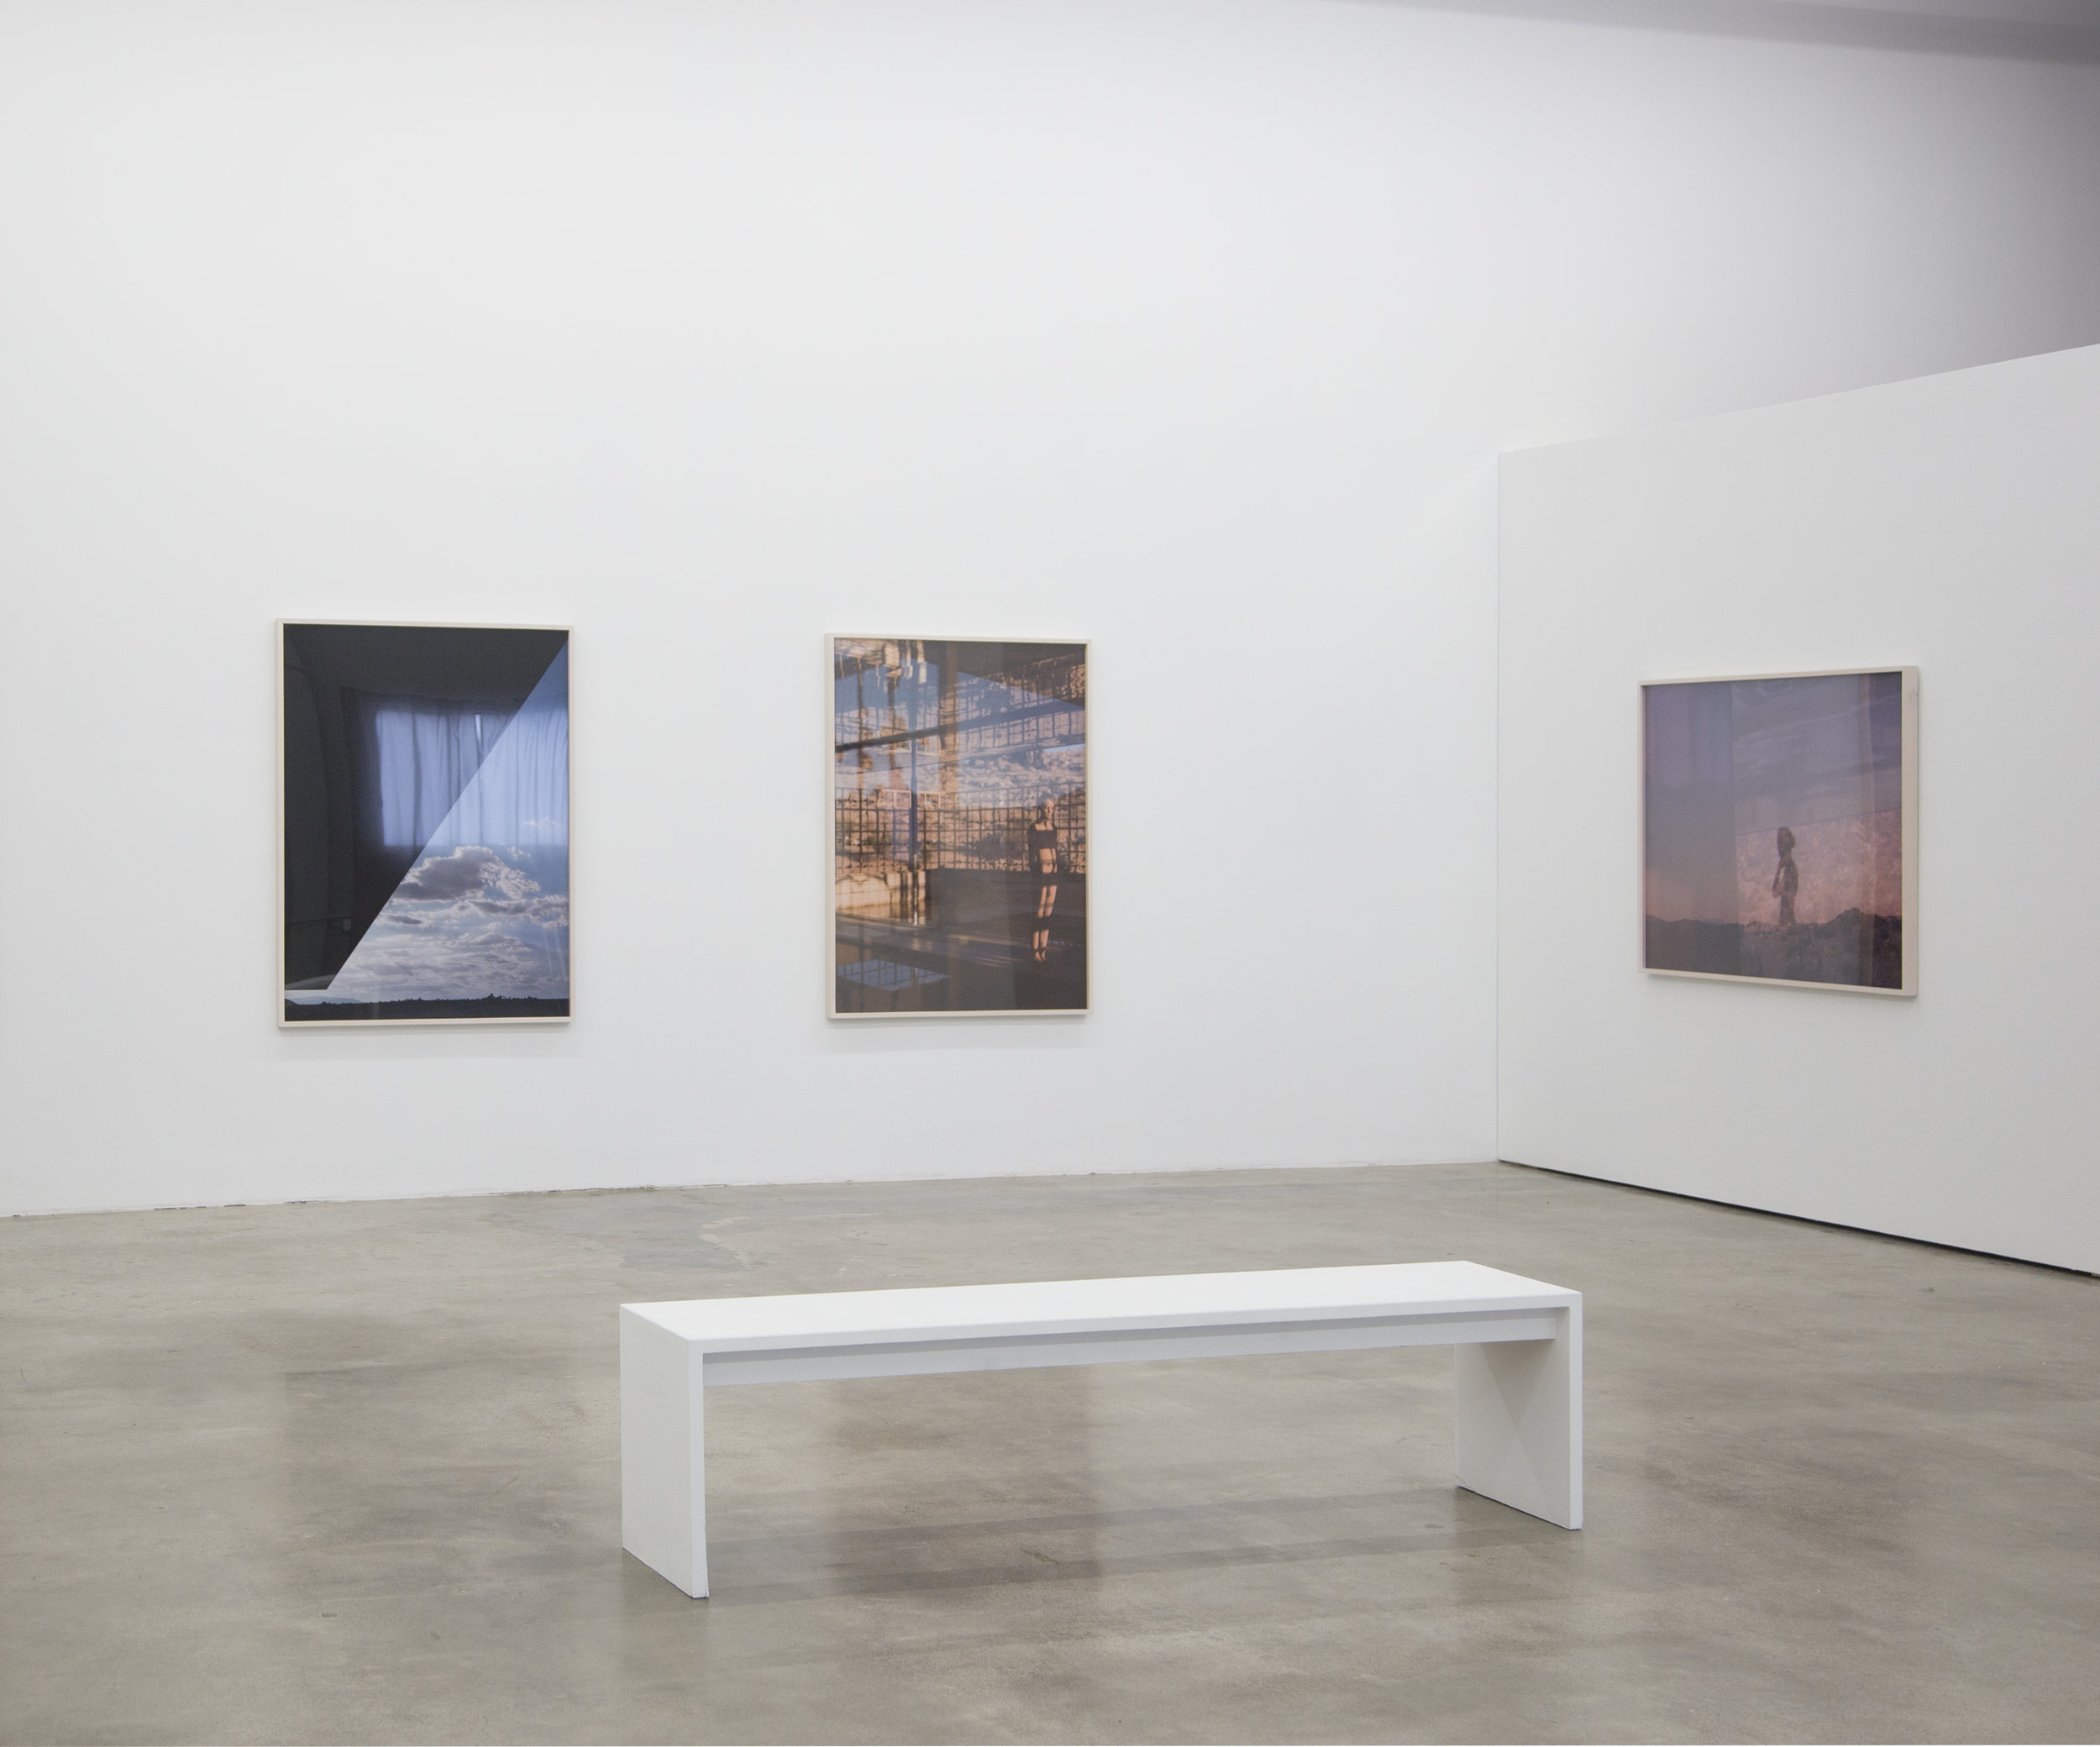 Installation view Mona Kuhn:  New Works,  April 6 - May 14, 2016 at EUQINOM Gallery